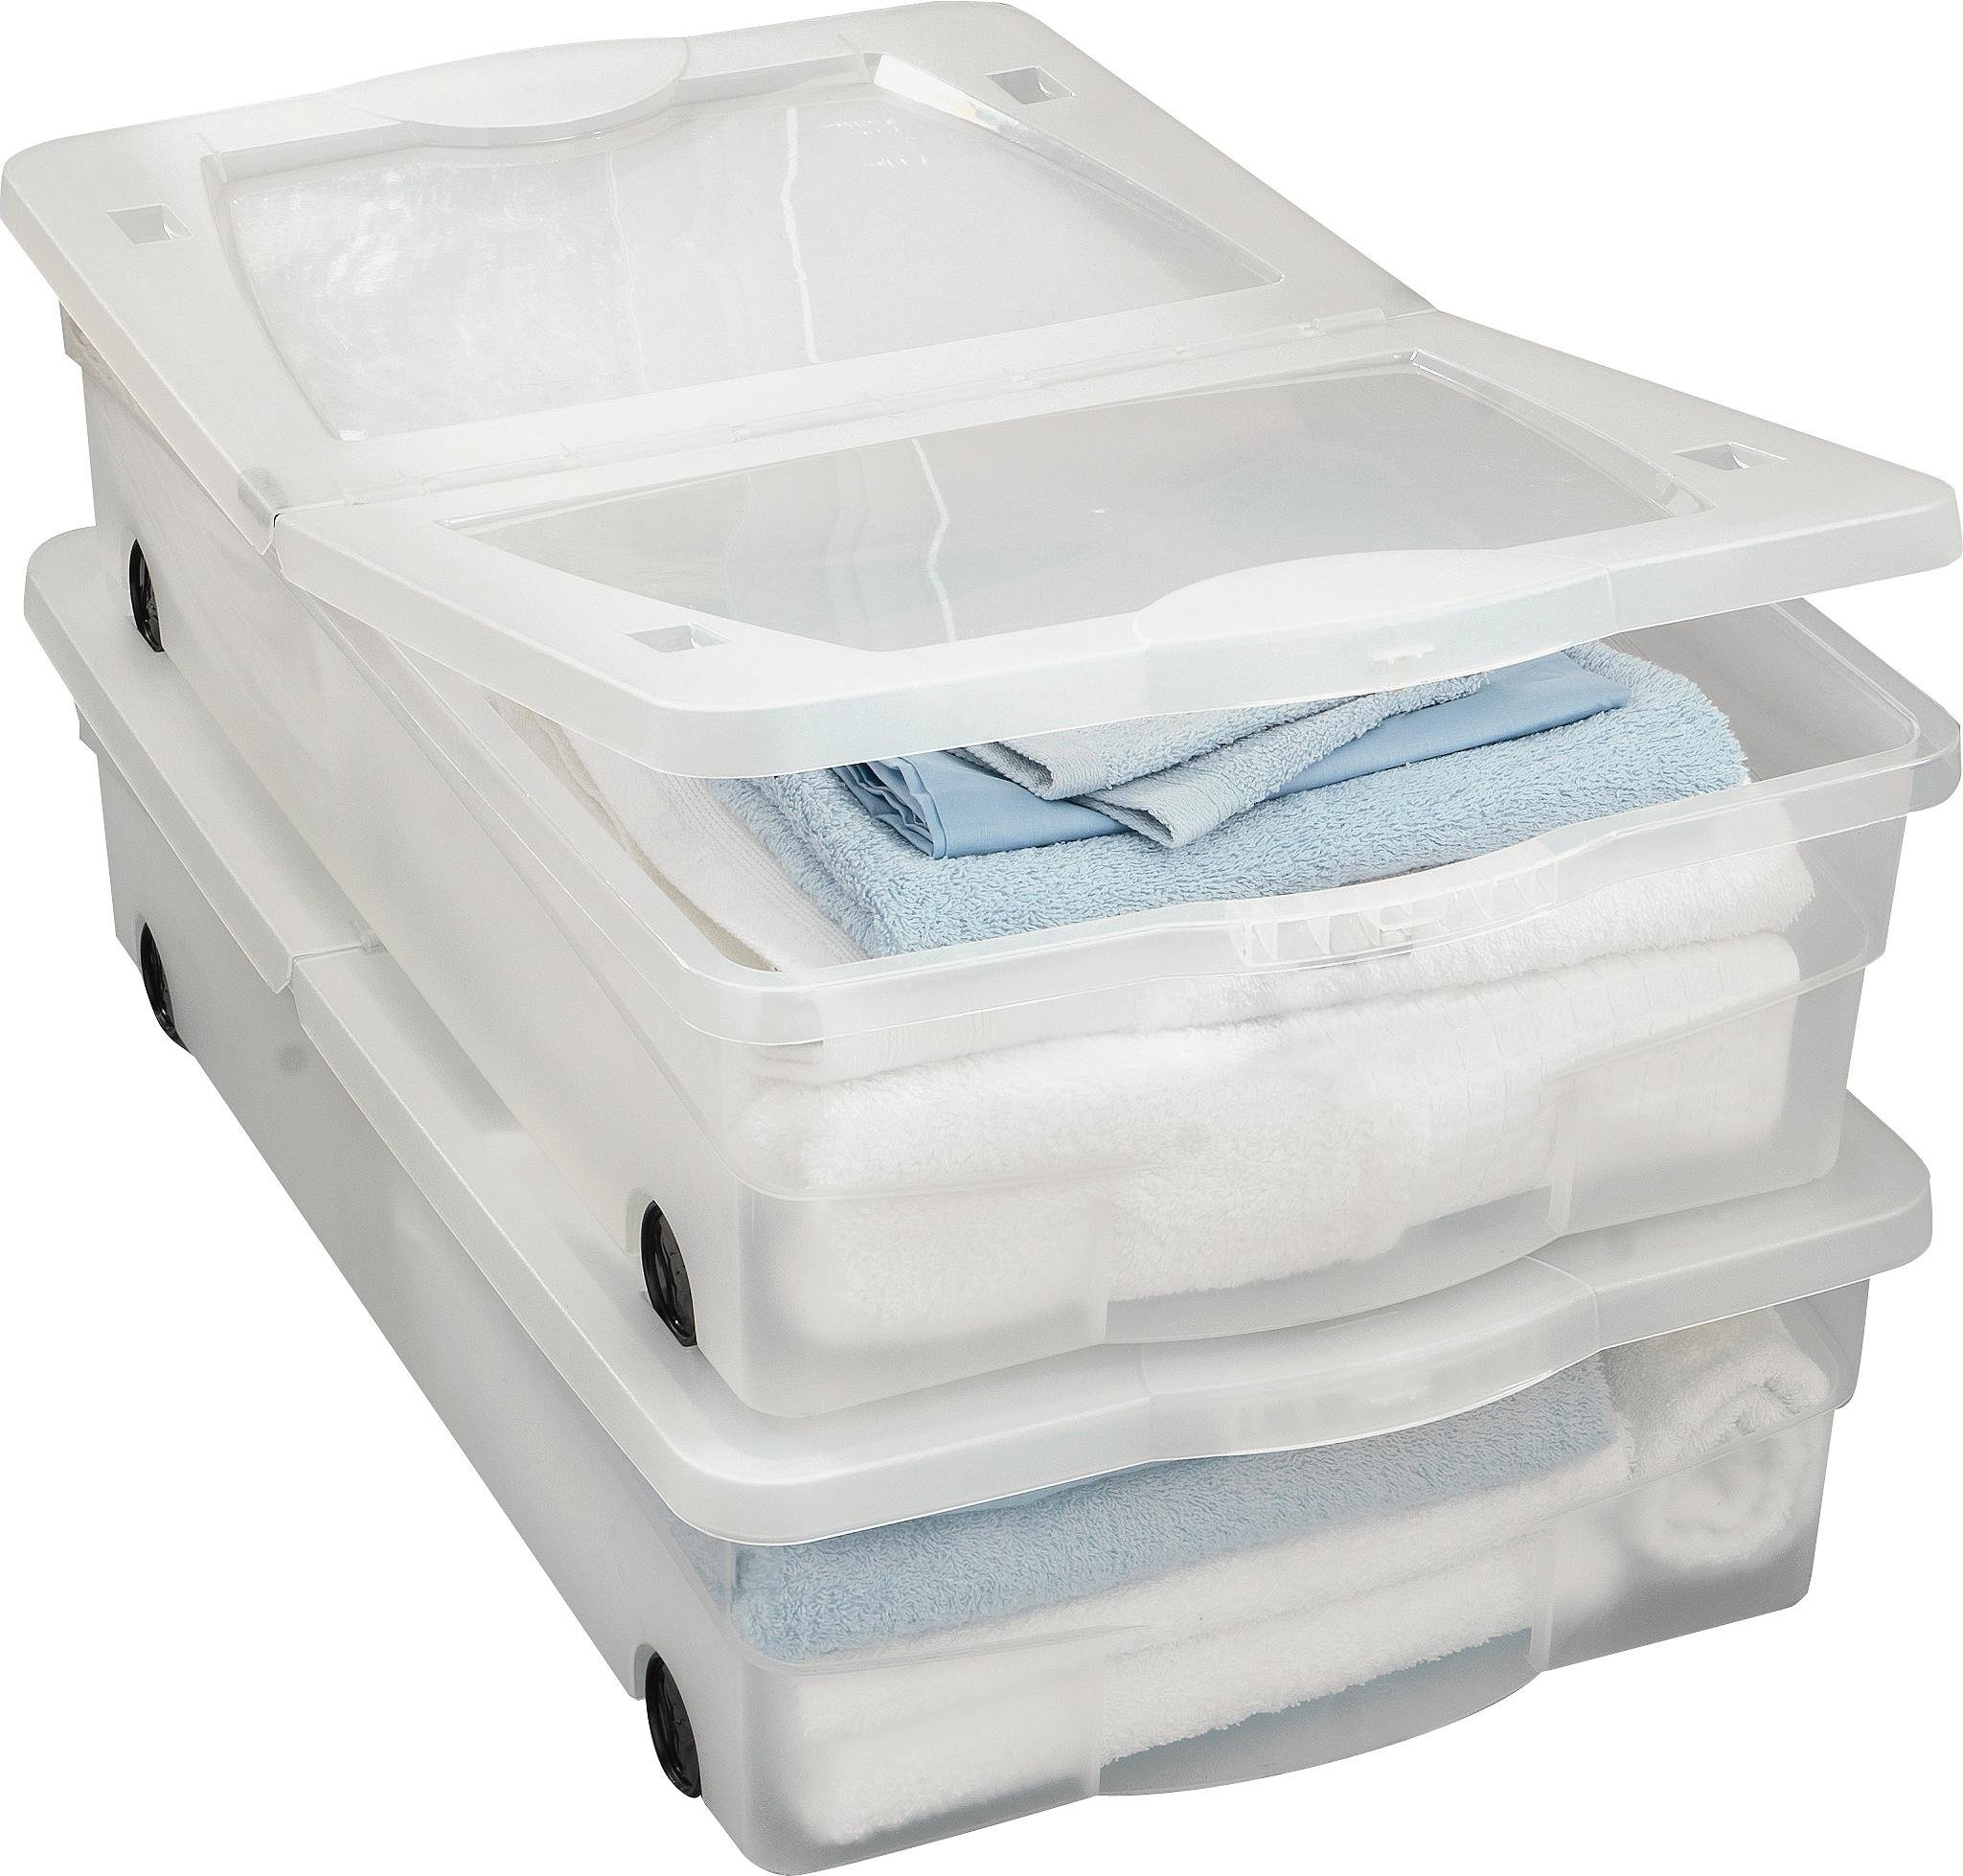 home 50 litre plastic underbed storage with lids set of 2